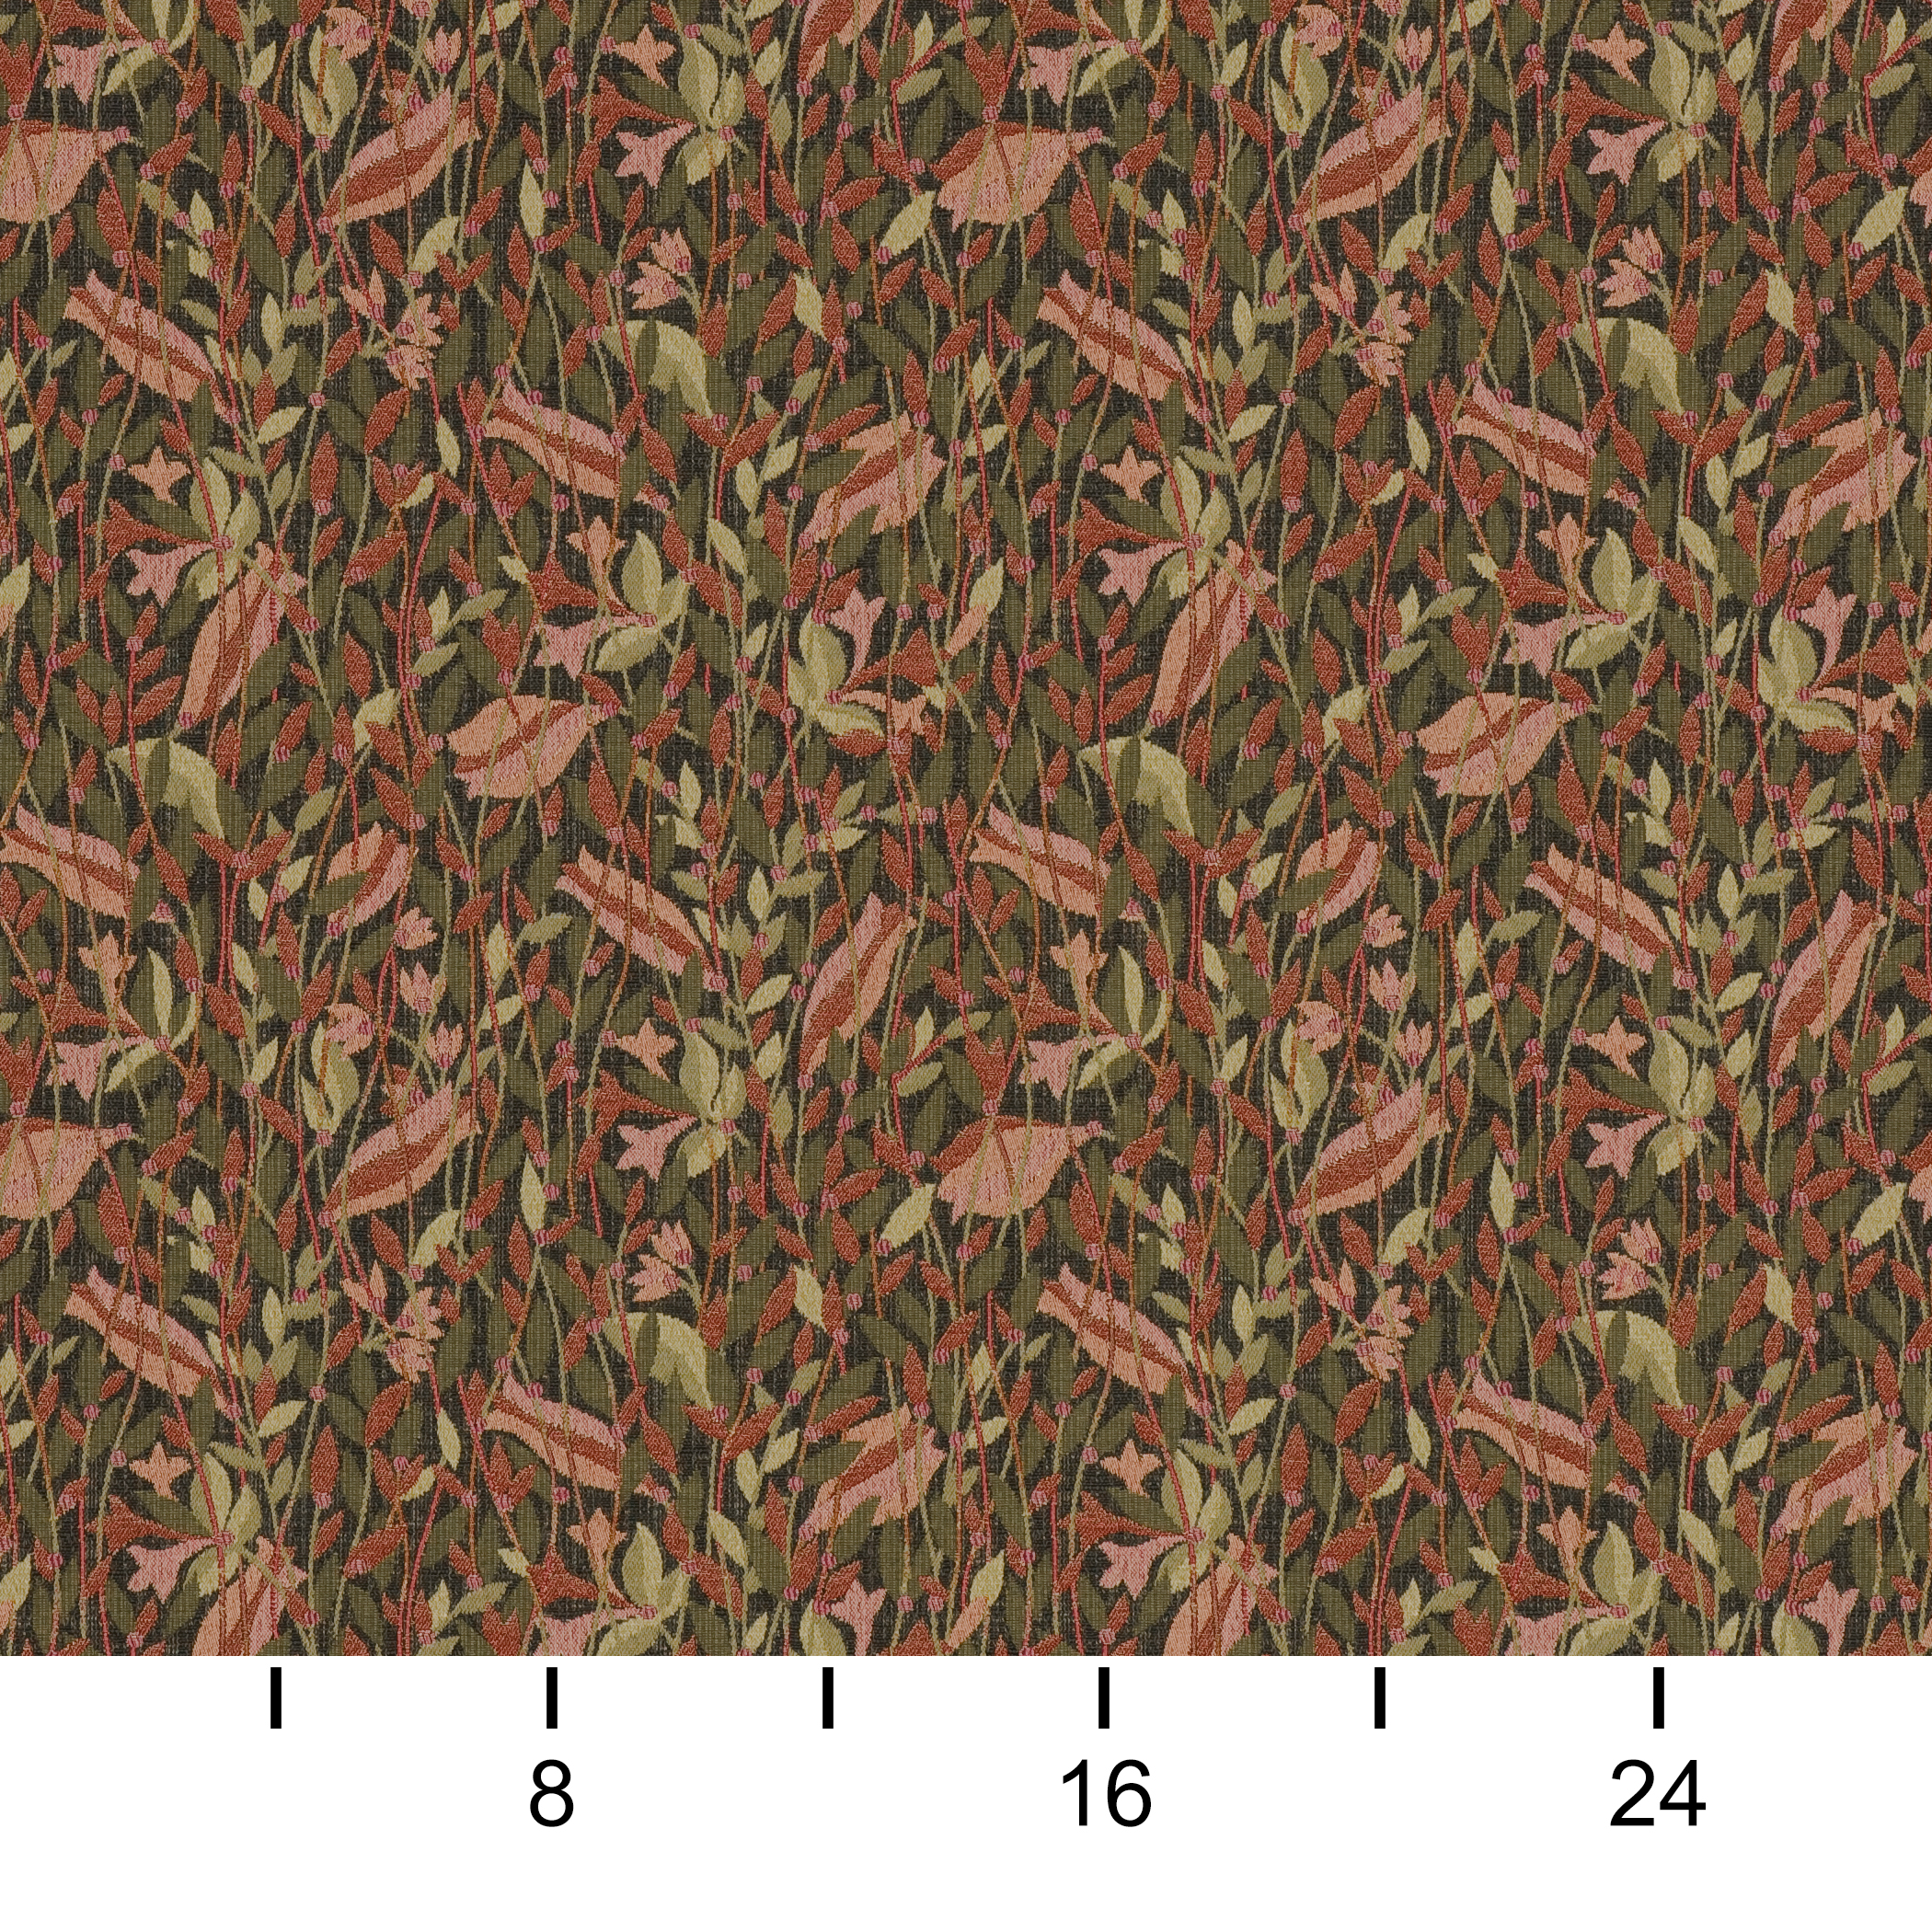 Tupelo Garden Grey and Red Leaves Woven Upholstery Fabric